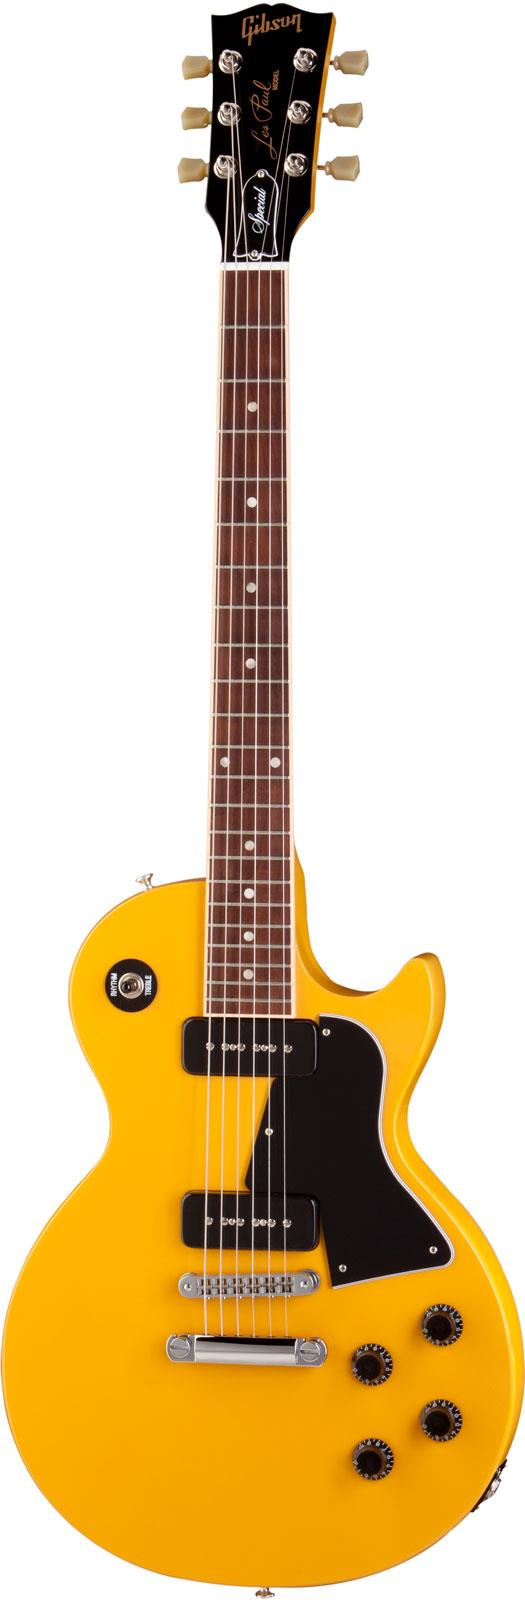 gibson les paul junior special p90 gloss yellow keymusic. Black Bedroom Furniture Sets. Home Design Ideas